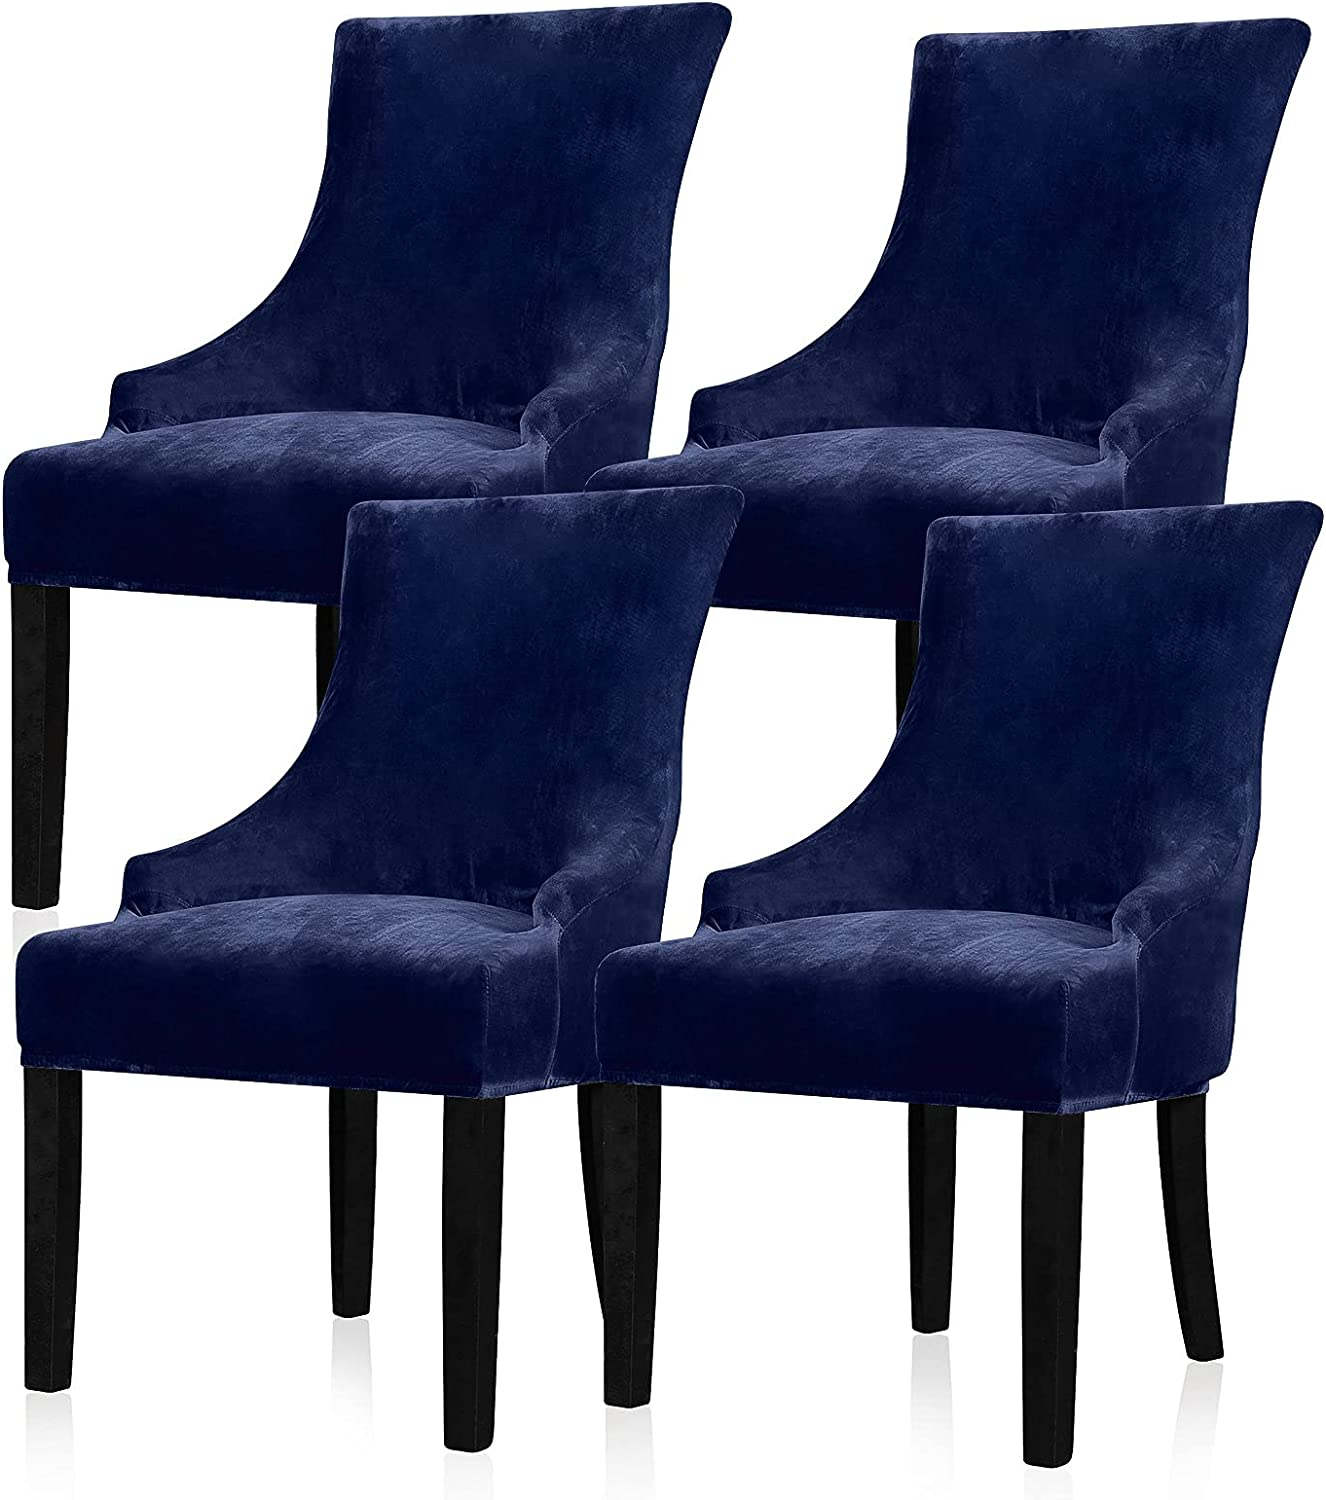 Lellen Velvet Stretch Sales of SALE items from new works Wingback Industry No. 1 Chair Cover - Slipcover Reusable